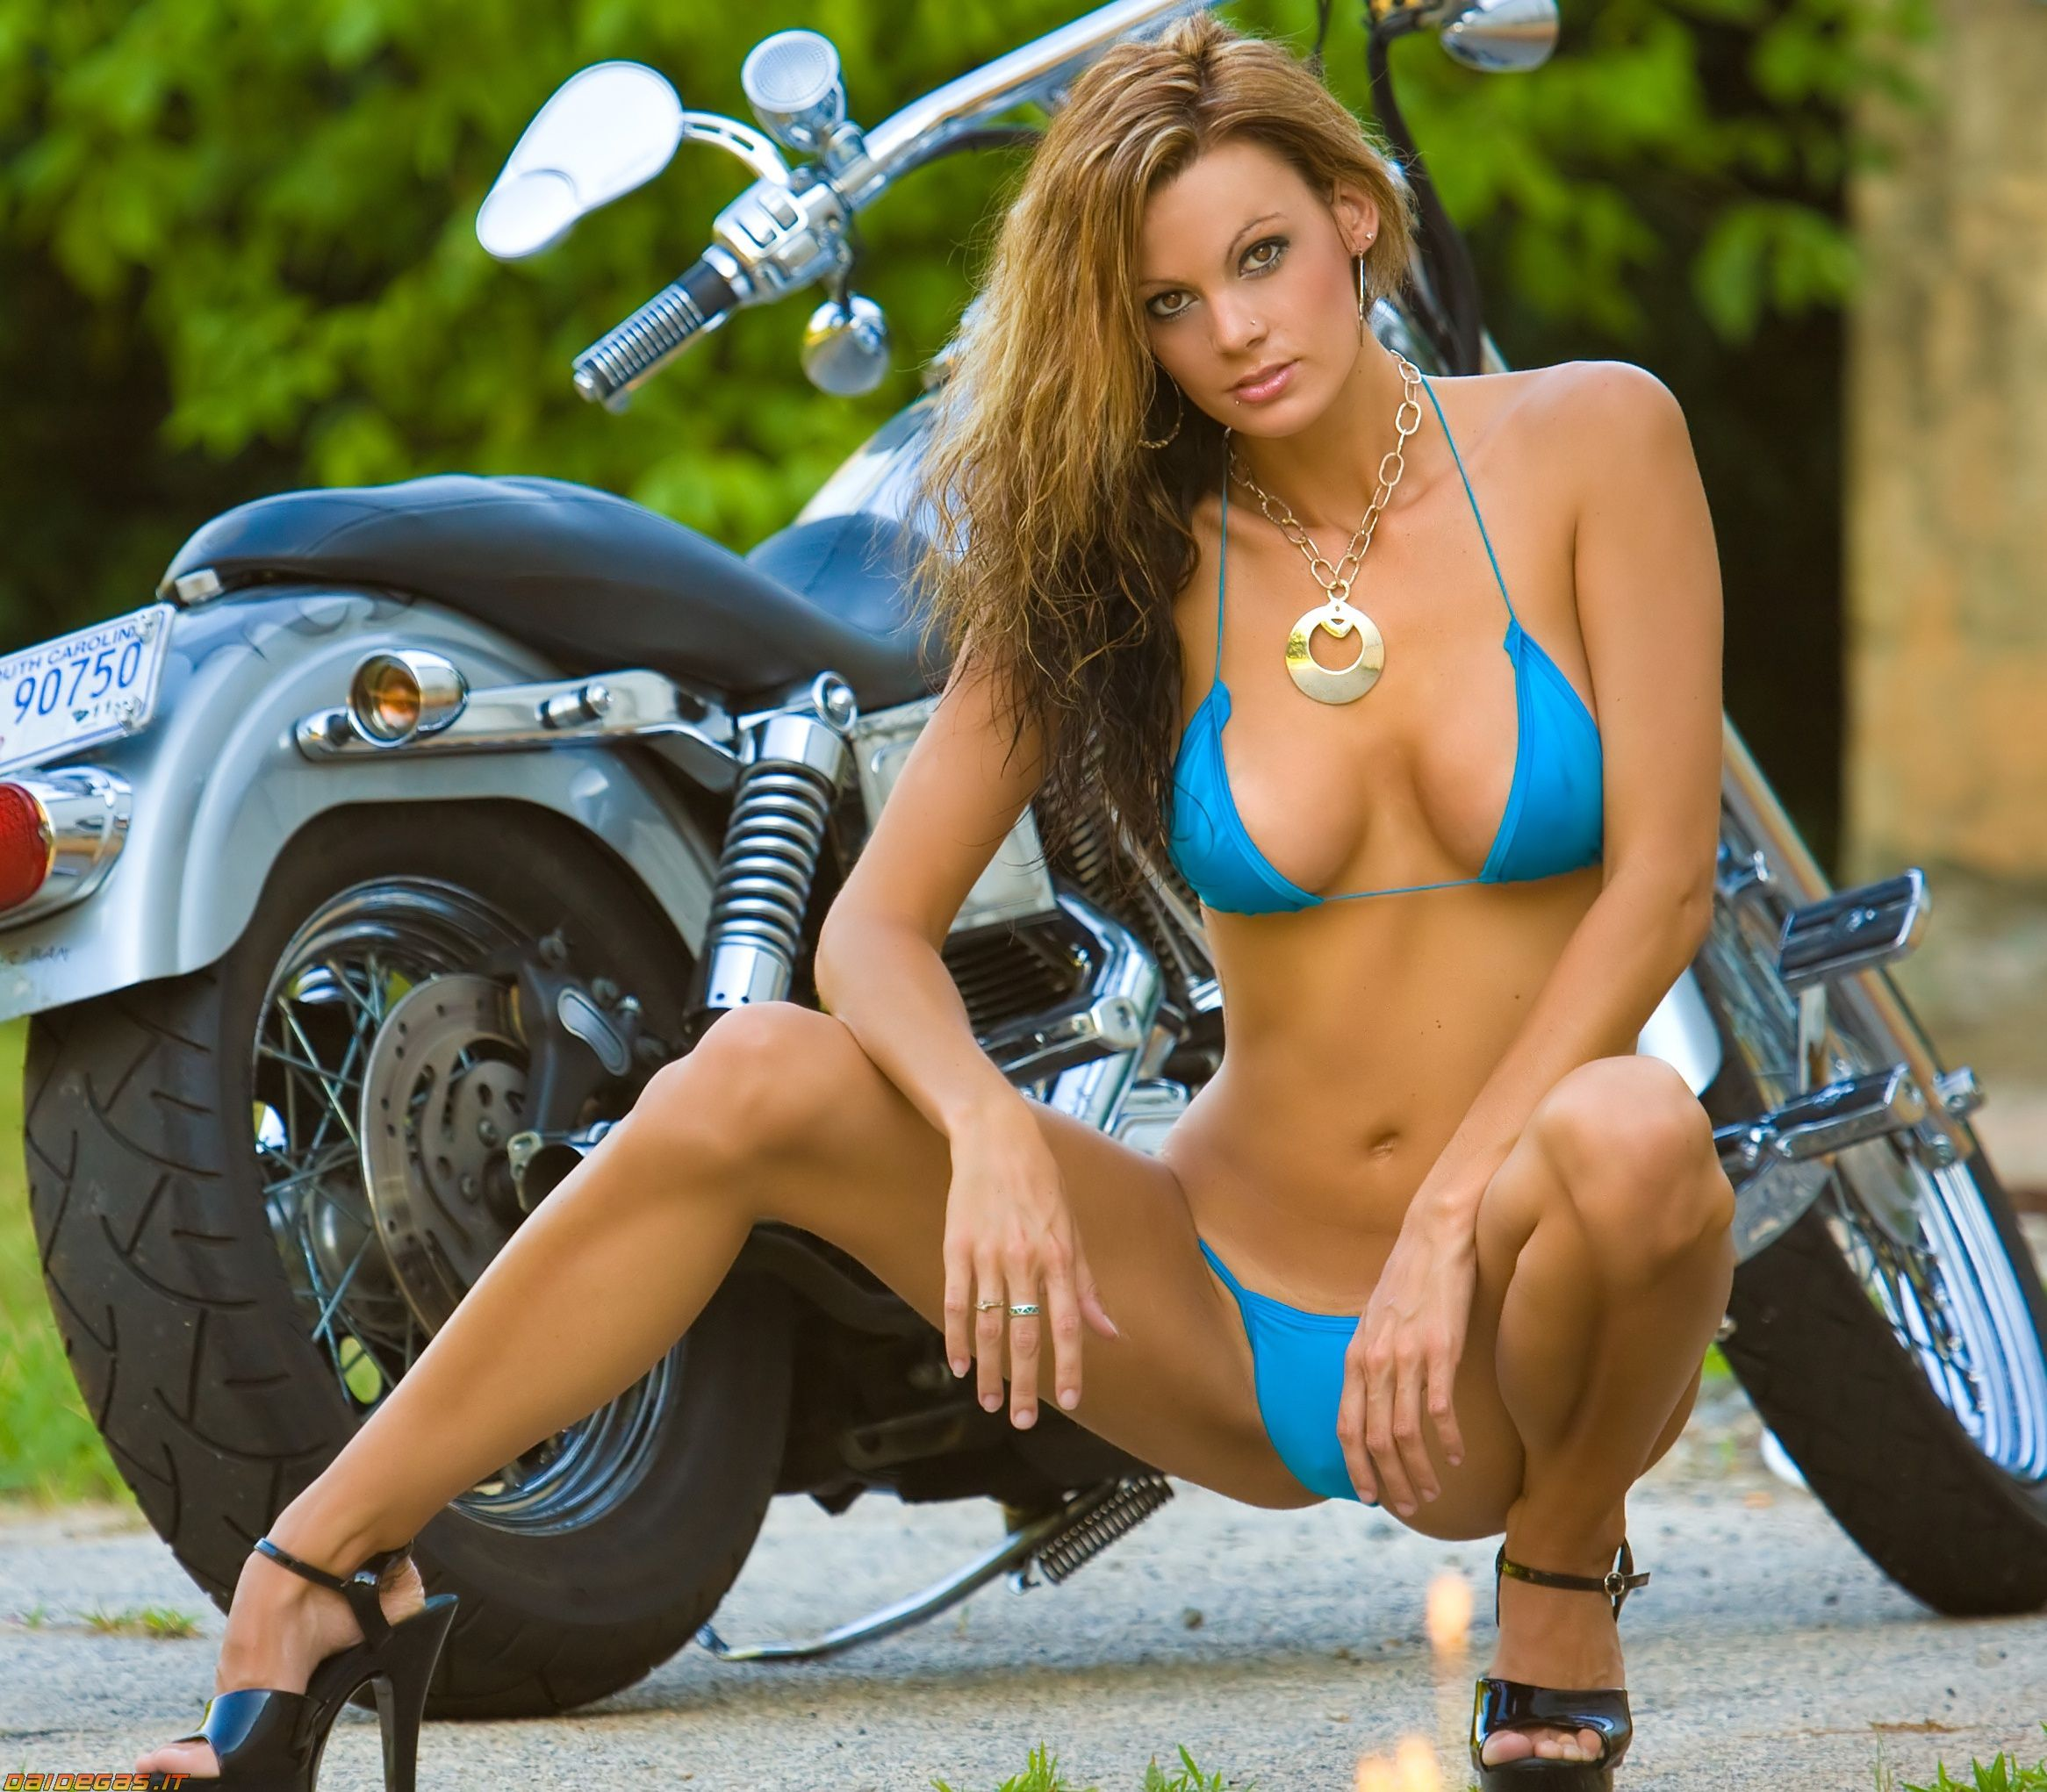 Bike riders dating site 1